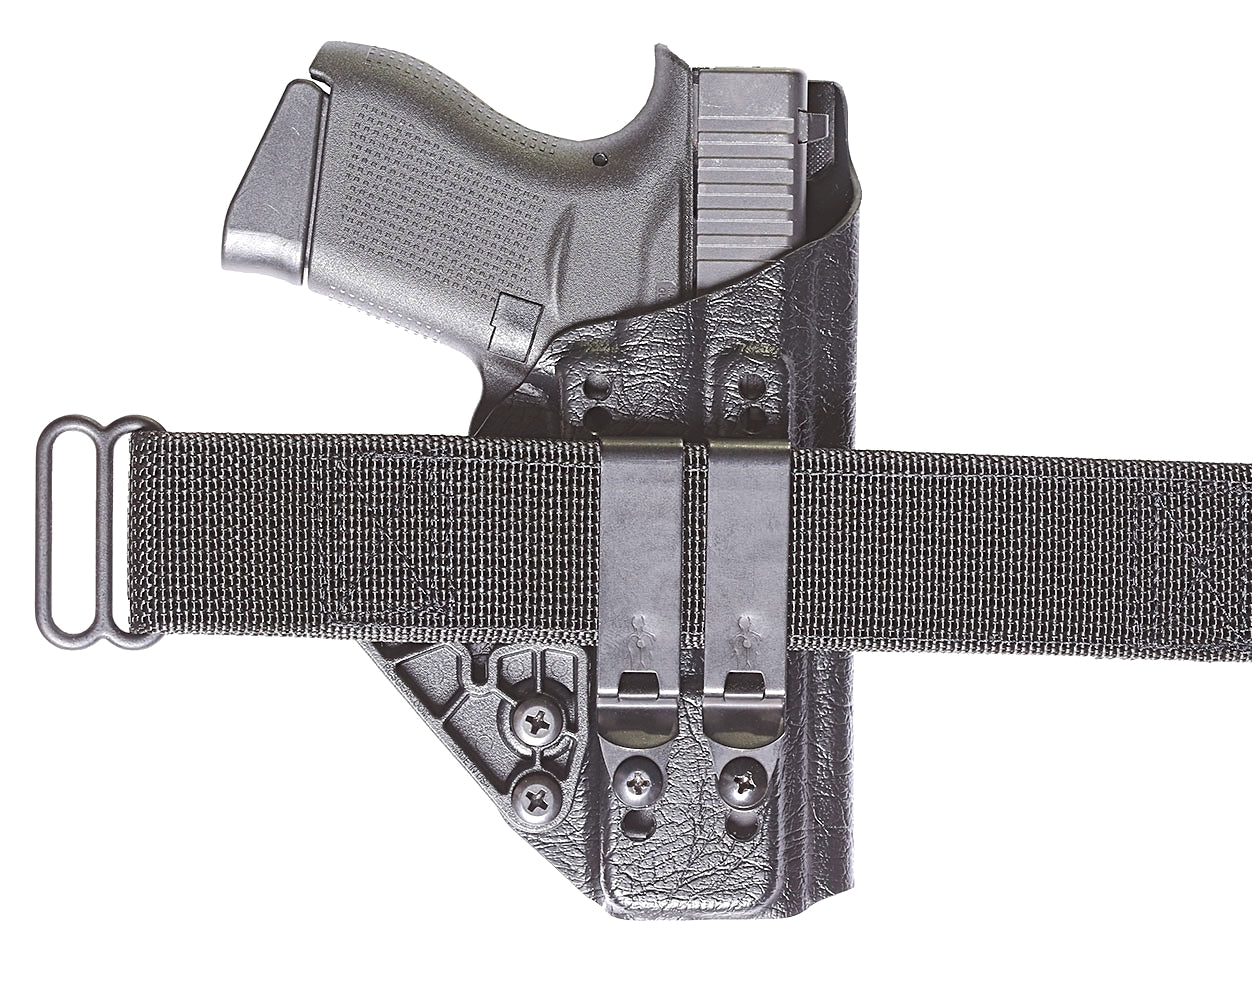 "Mod 1 1.75"" HLR Discreet Gear Clip - V Development Group edc glock shirt carry aiwb appendix belt rmt tourniquet"